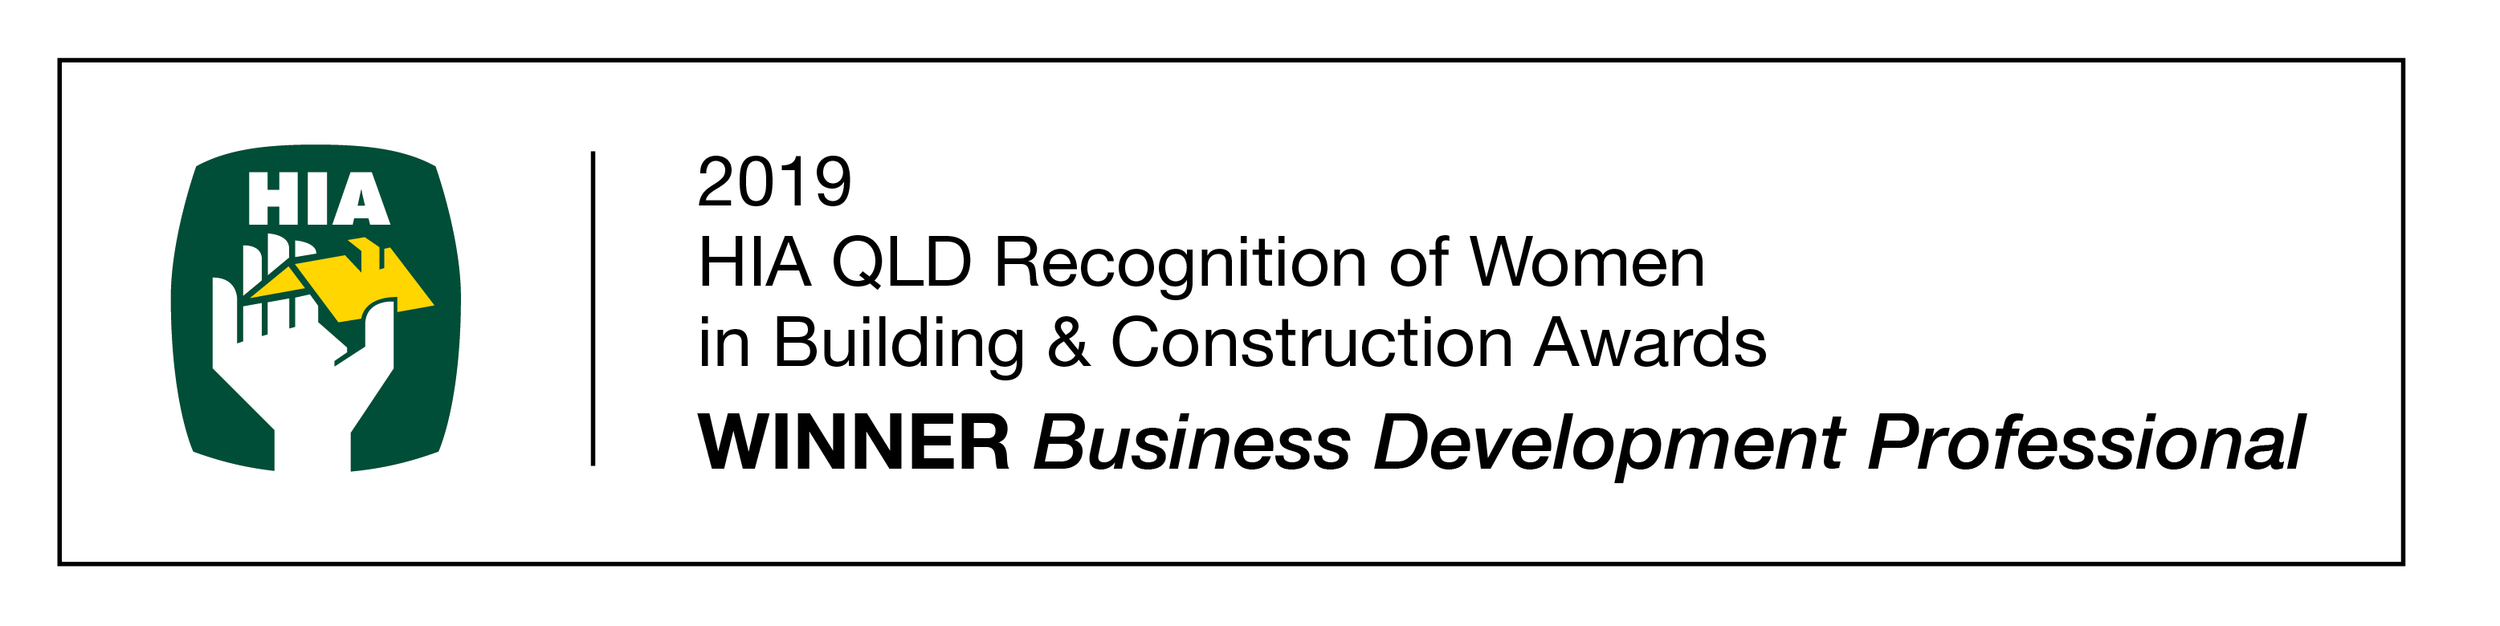 DT8826 HIA QLD Recognition of Women 2019 _WINNER Business Development Pro.png